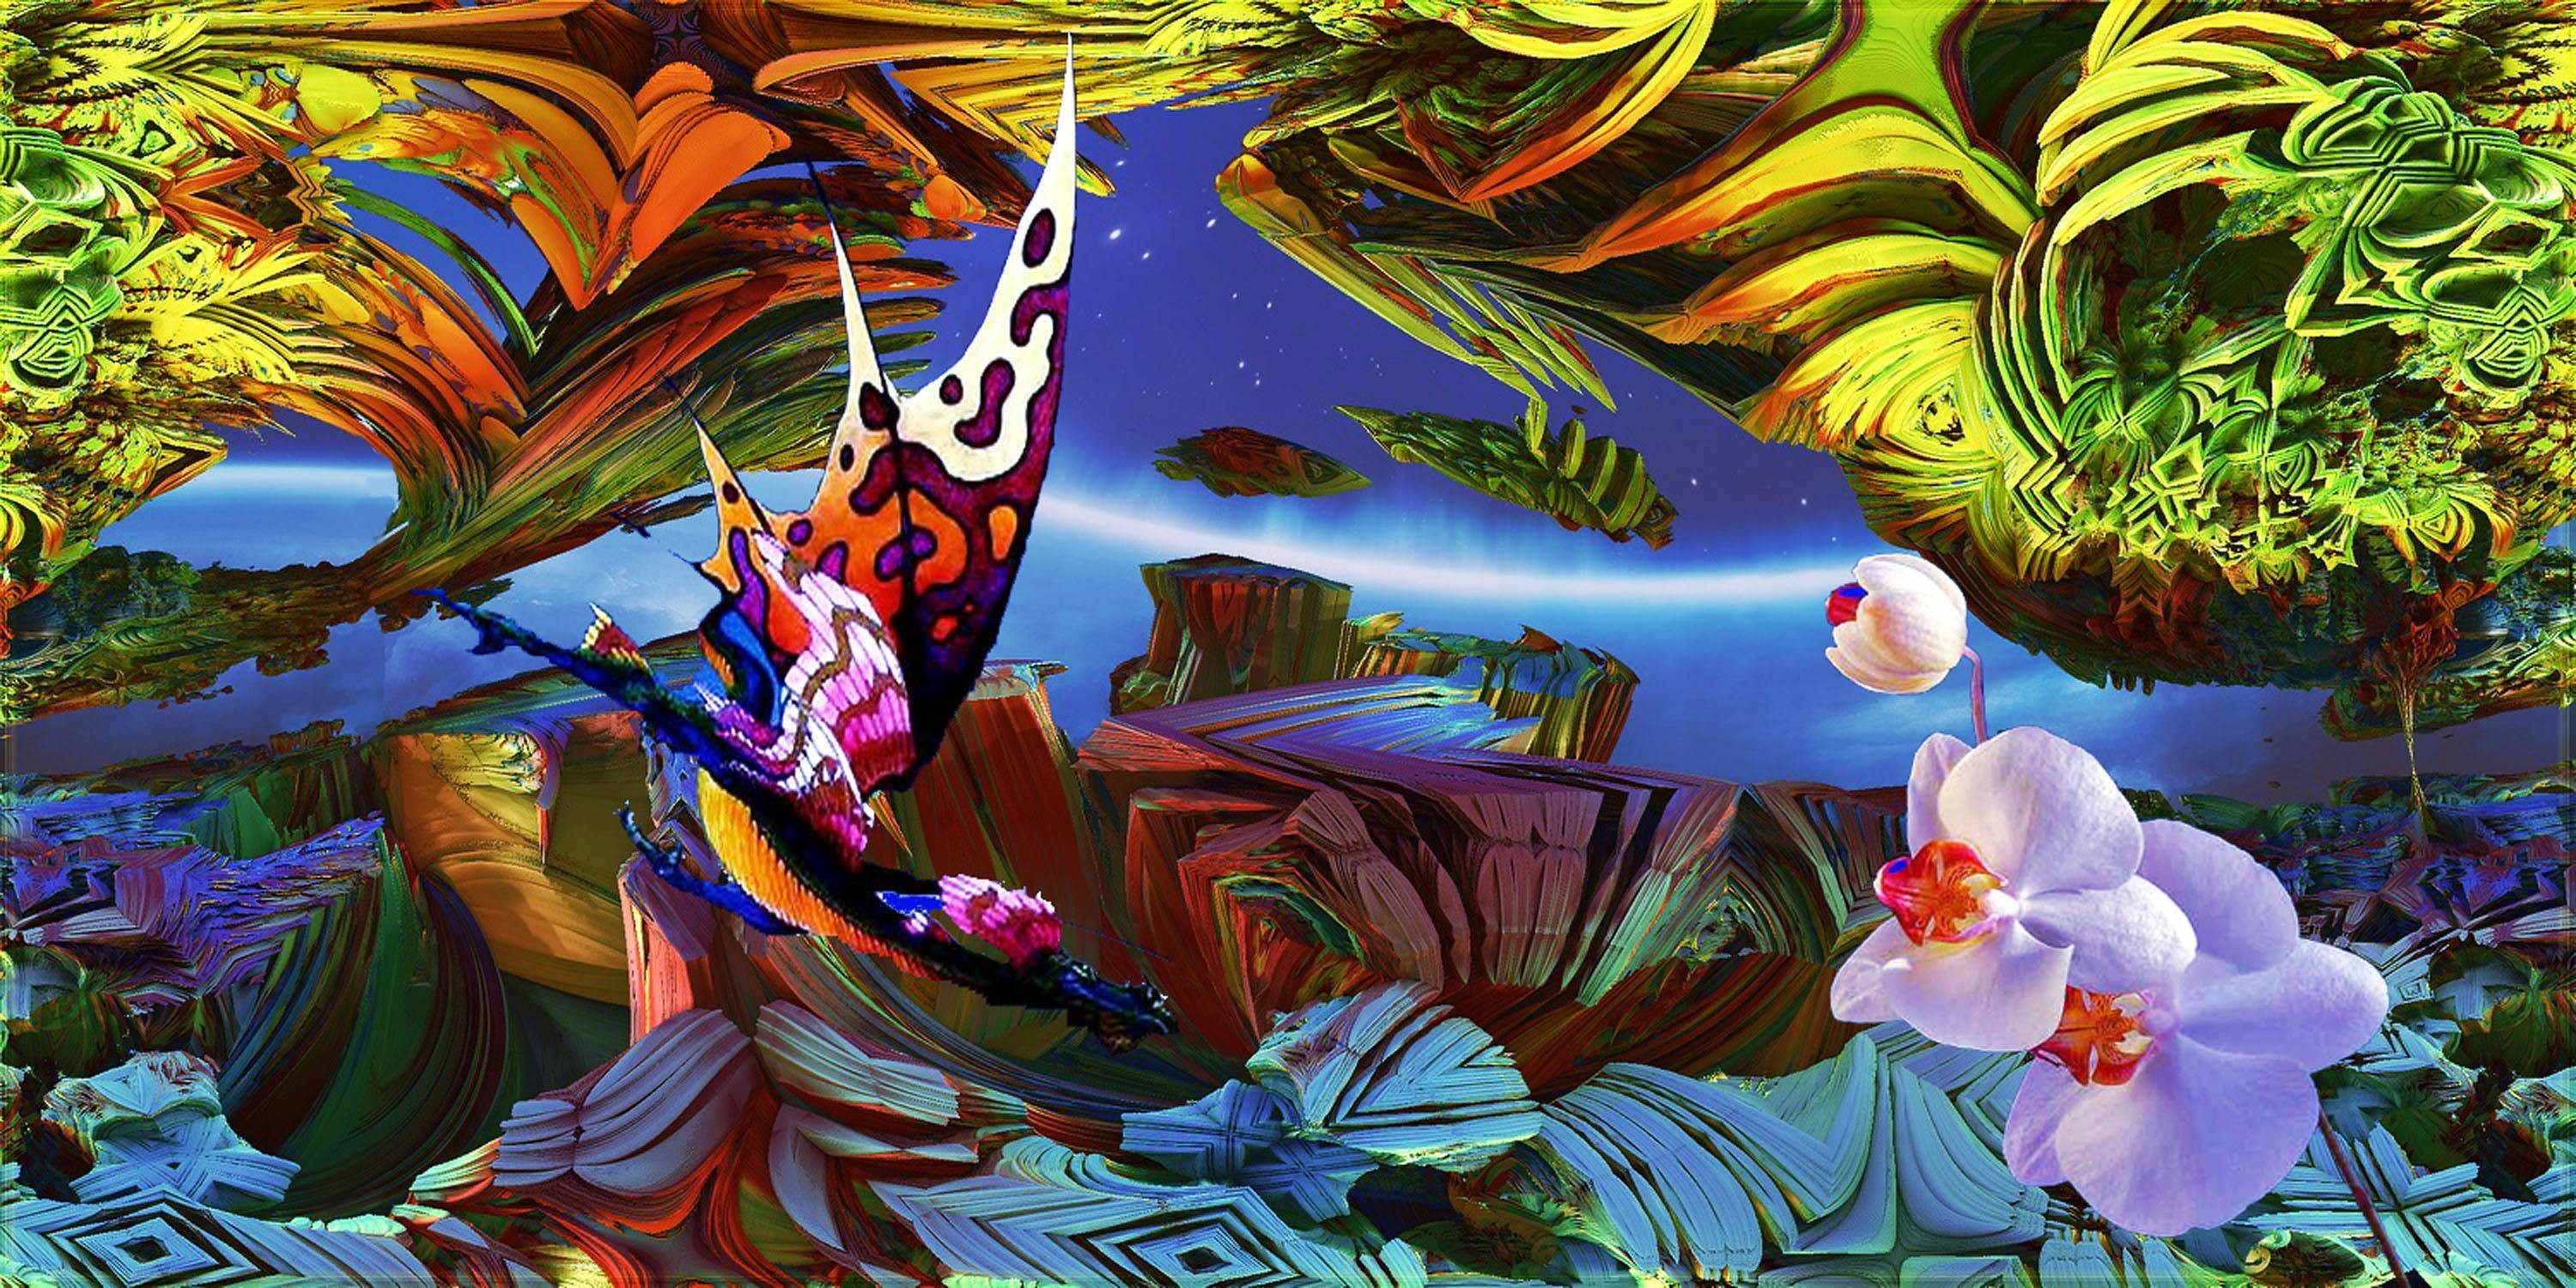 3000x1500 HOMAGE TO ROGER DEAN II by DorianoArt on DeviantArt